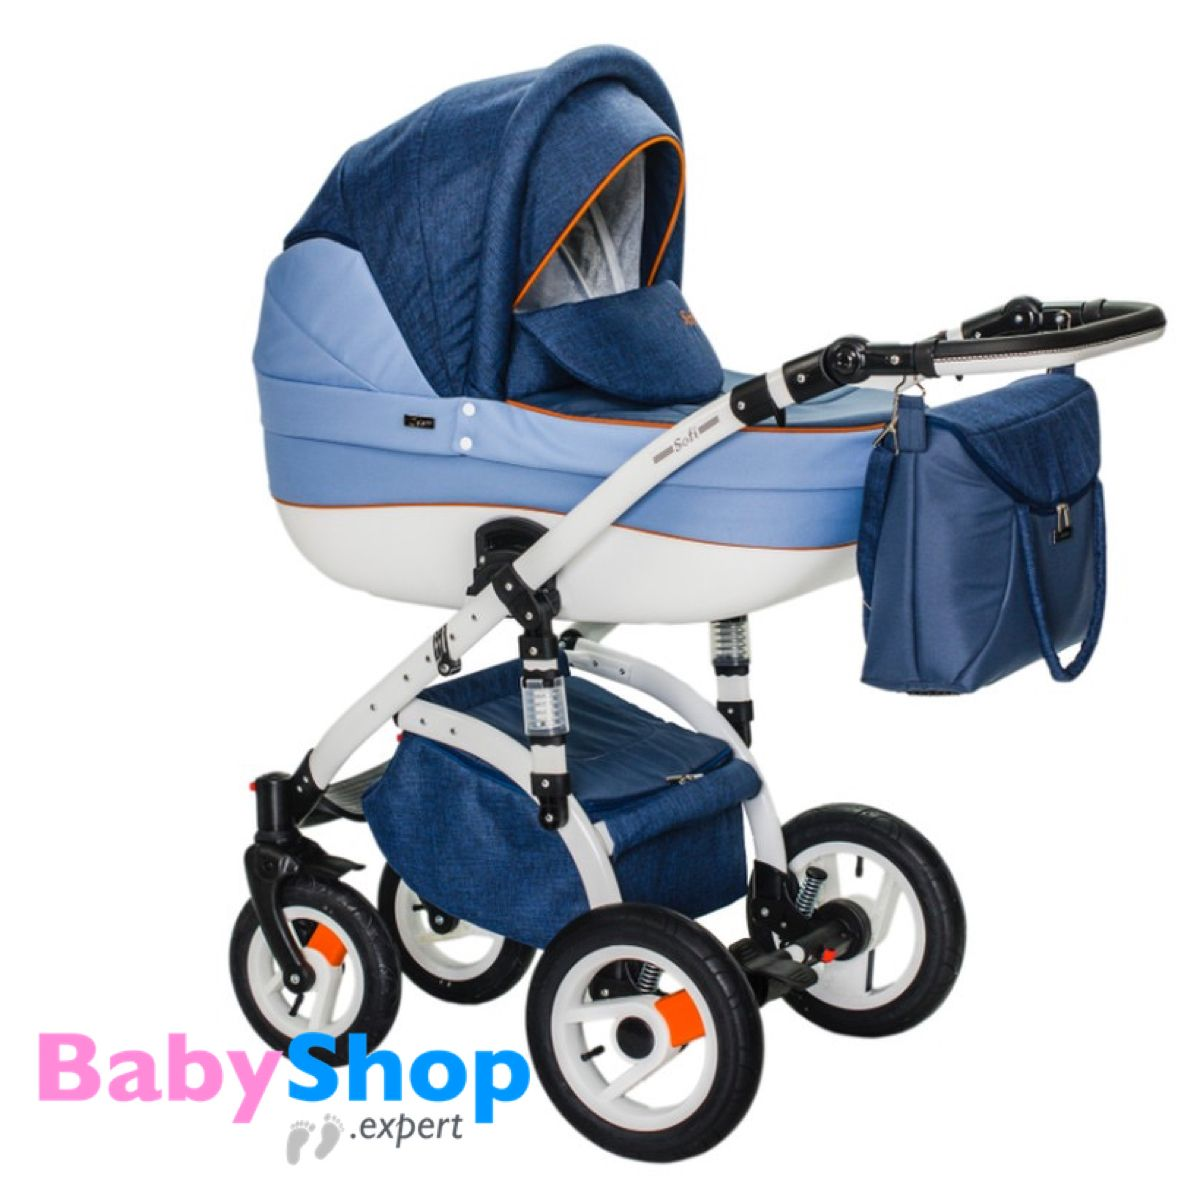 Knorr Kinderwagen Online Shop Pin By Babyshop Expert On Kinderwagen Baby Strollers Baby